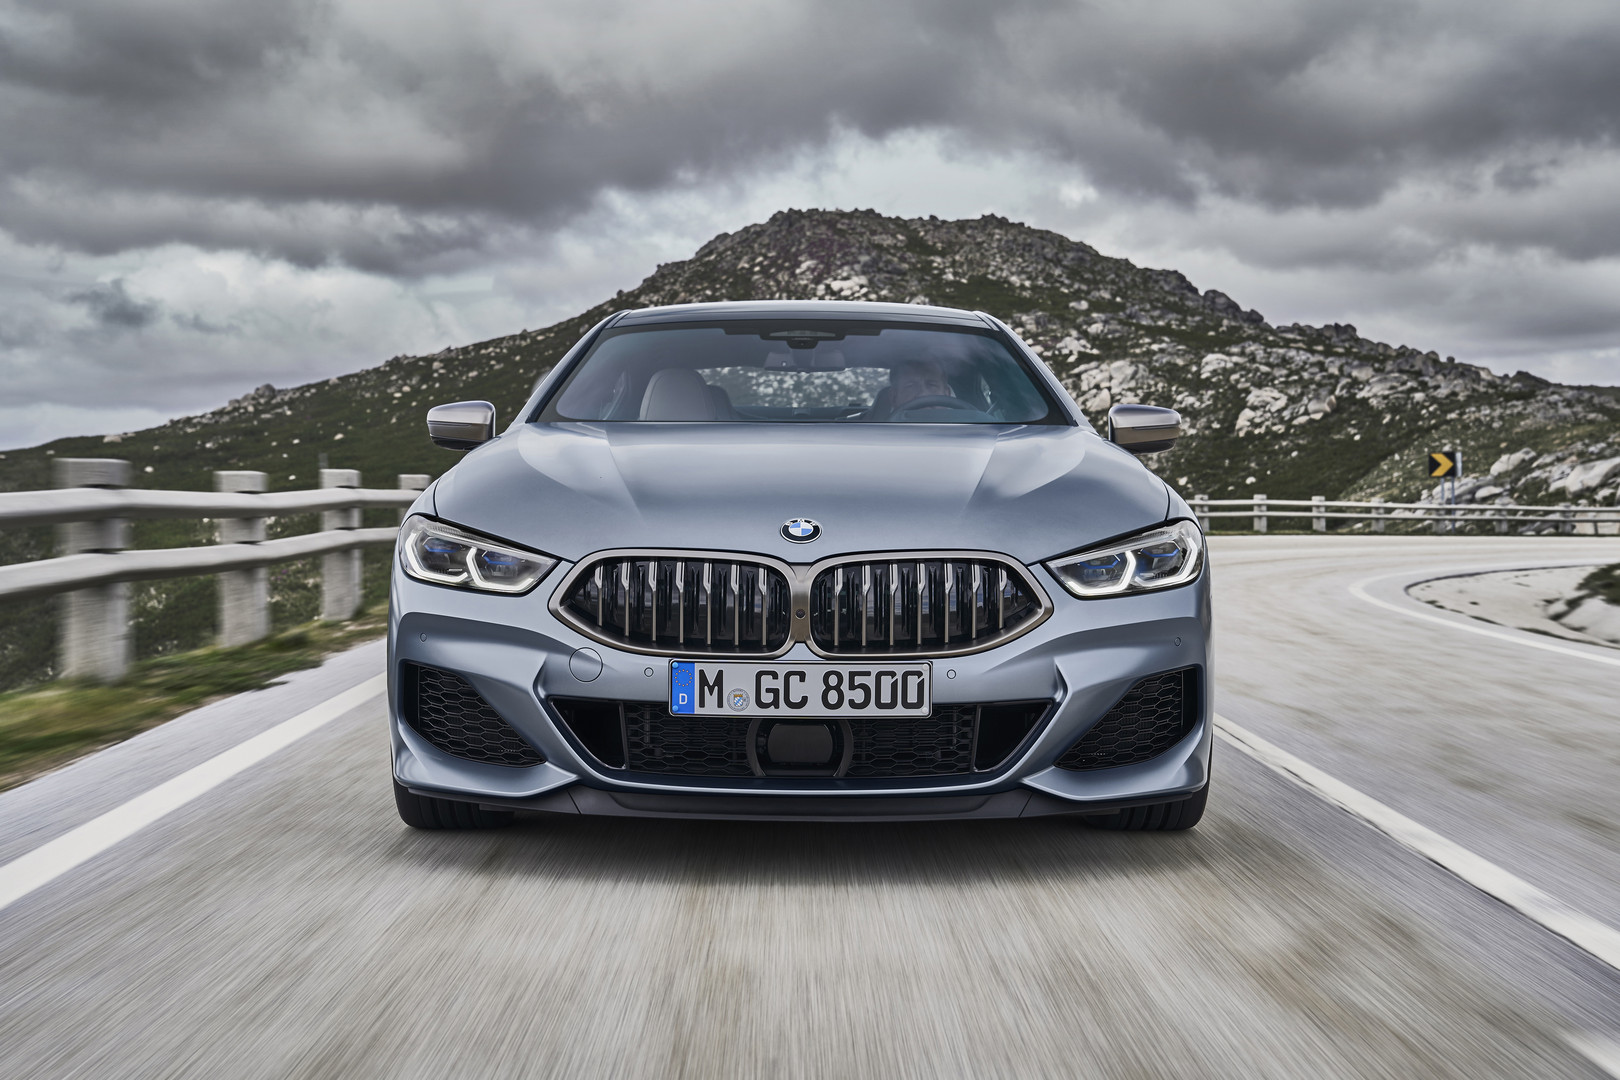 BMW 8 Series Gran Coupe Front View